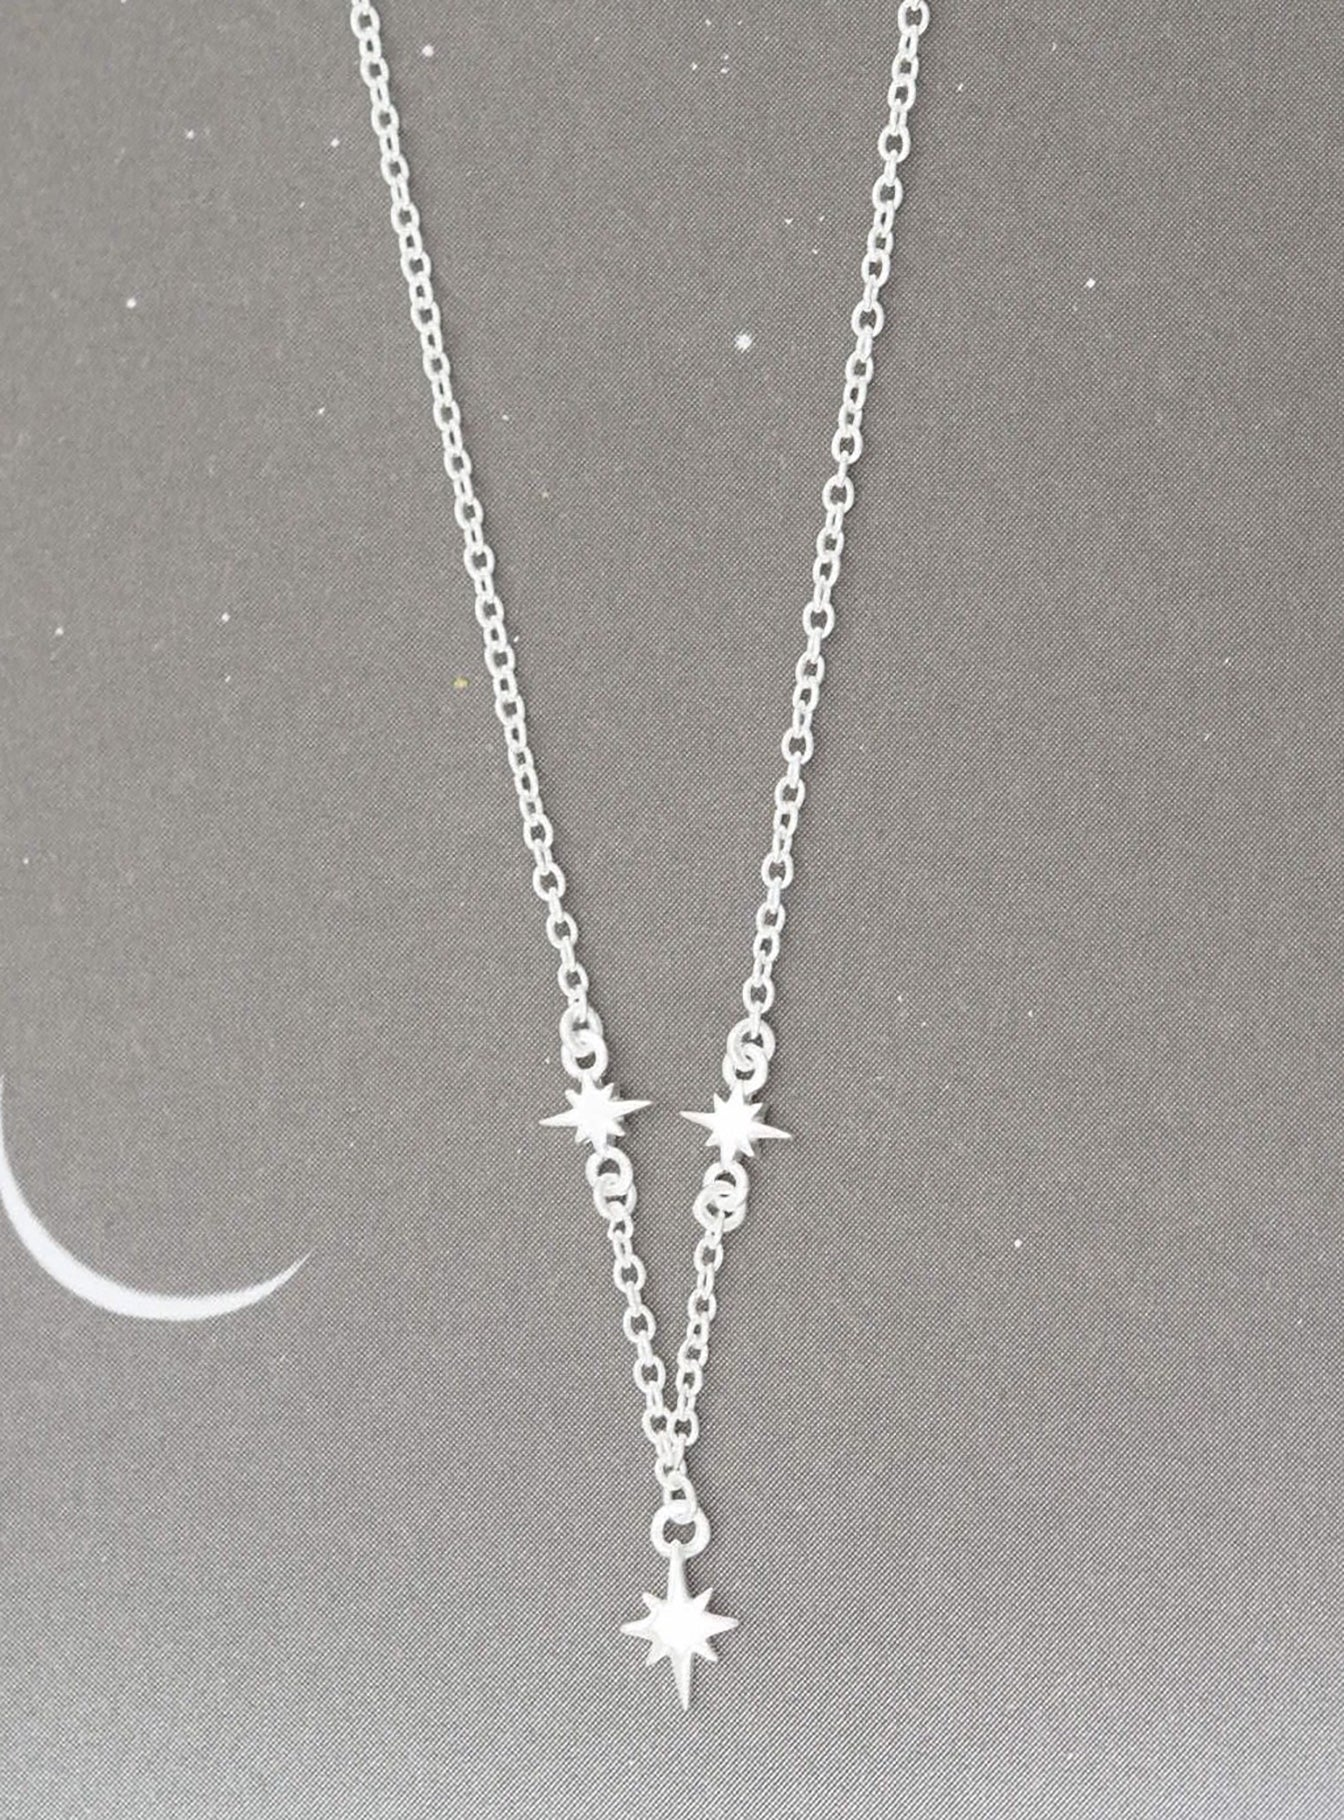 Midsummer Star Celestial Star Necklace Silver